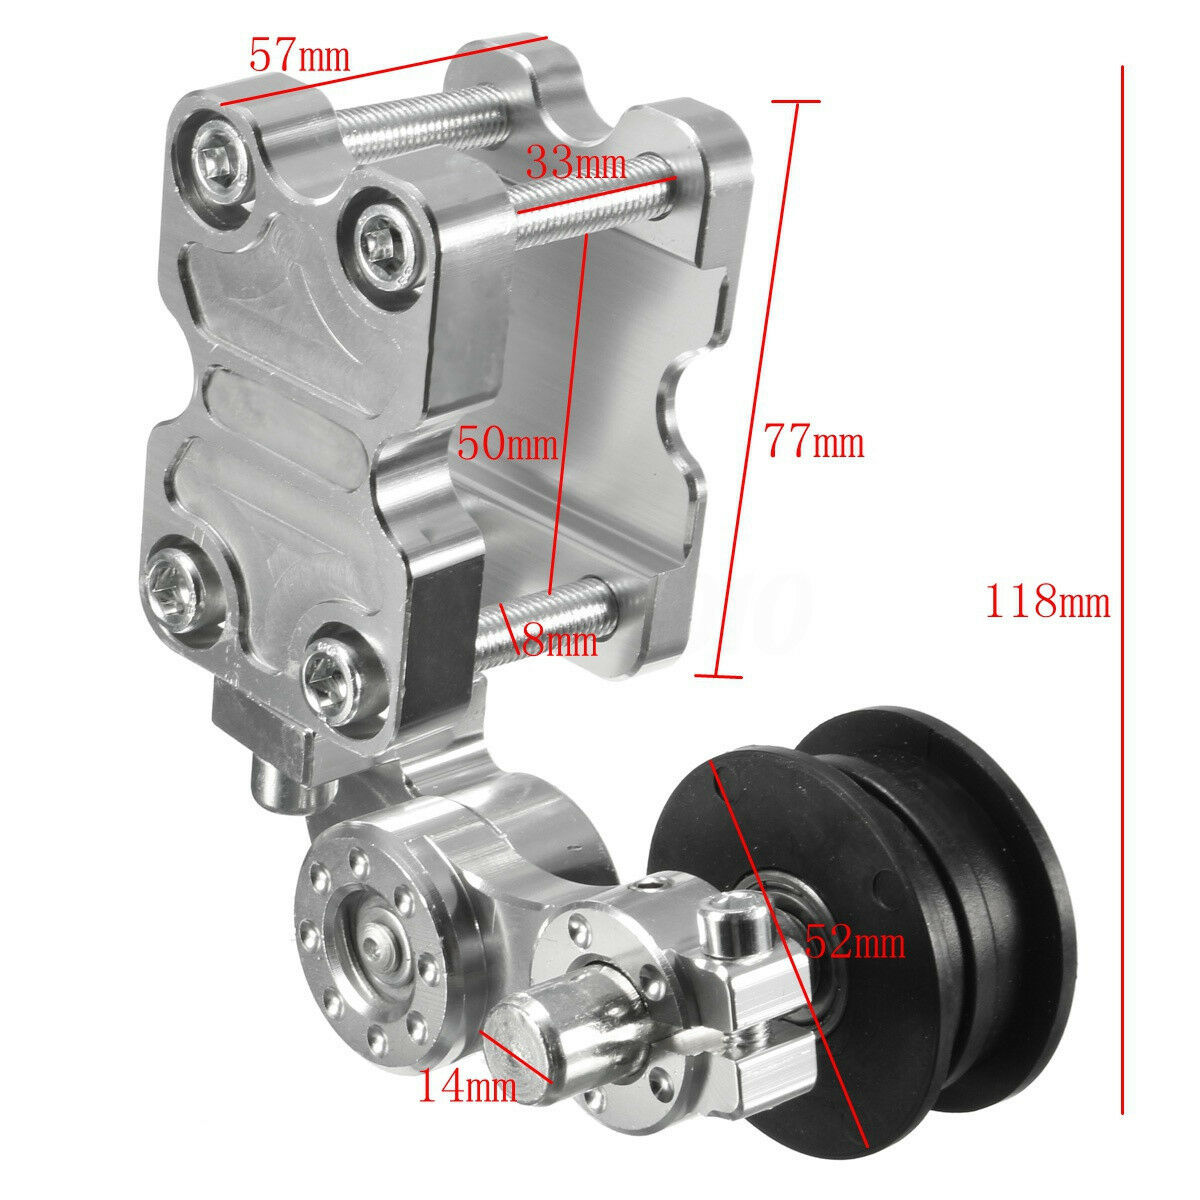 Motorcycle Chopper Chain Tensioner Chain Tensioner Roller Universal Chopper Chain Tensioner Adjuster Gear Aluminum+ Rubber